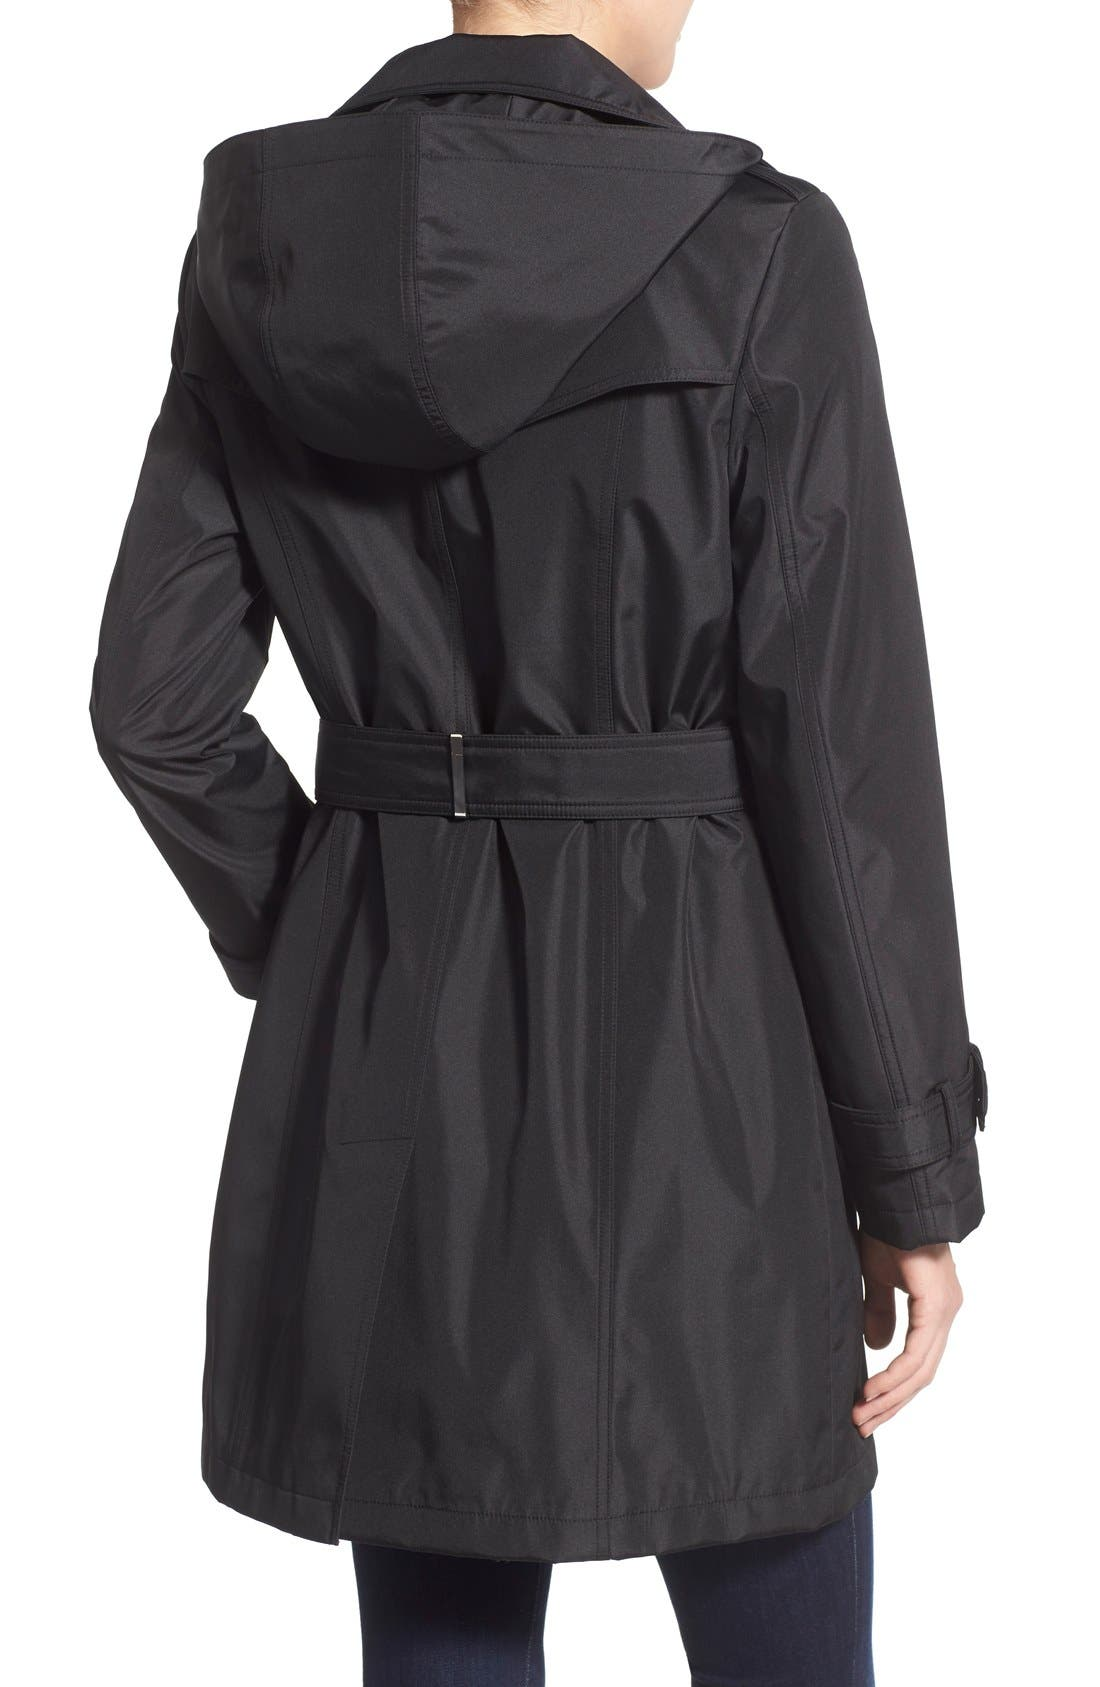 Single Breasted Belted Trench Coat,                             Alternate thumbnail 4, color,                             001